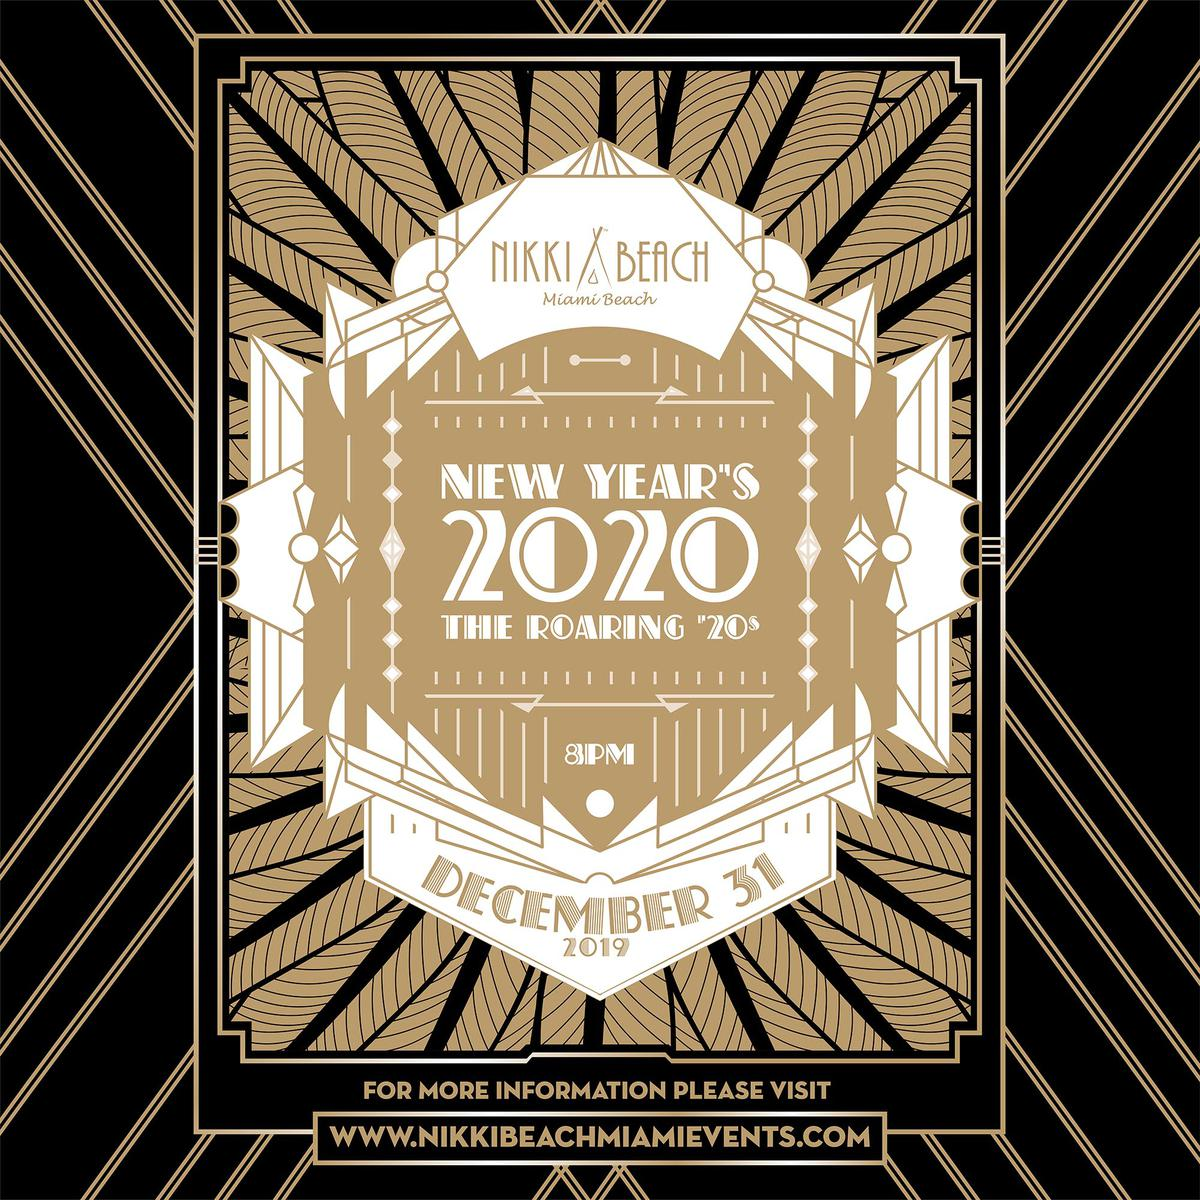 Miami New Years Eve 2020 Events.Roaring 20s New Year S Eve Party At Nikki Beach Tuesday